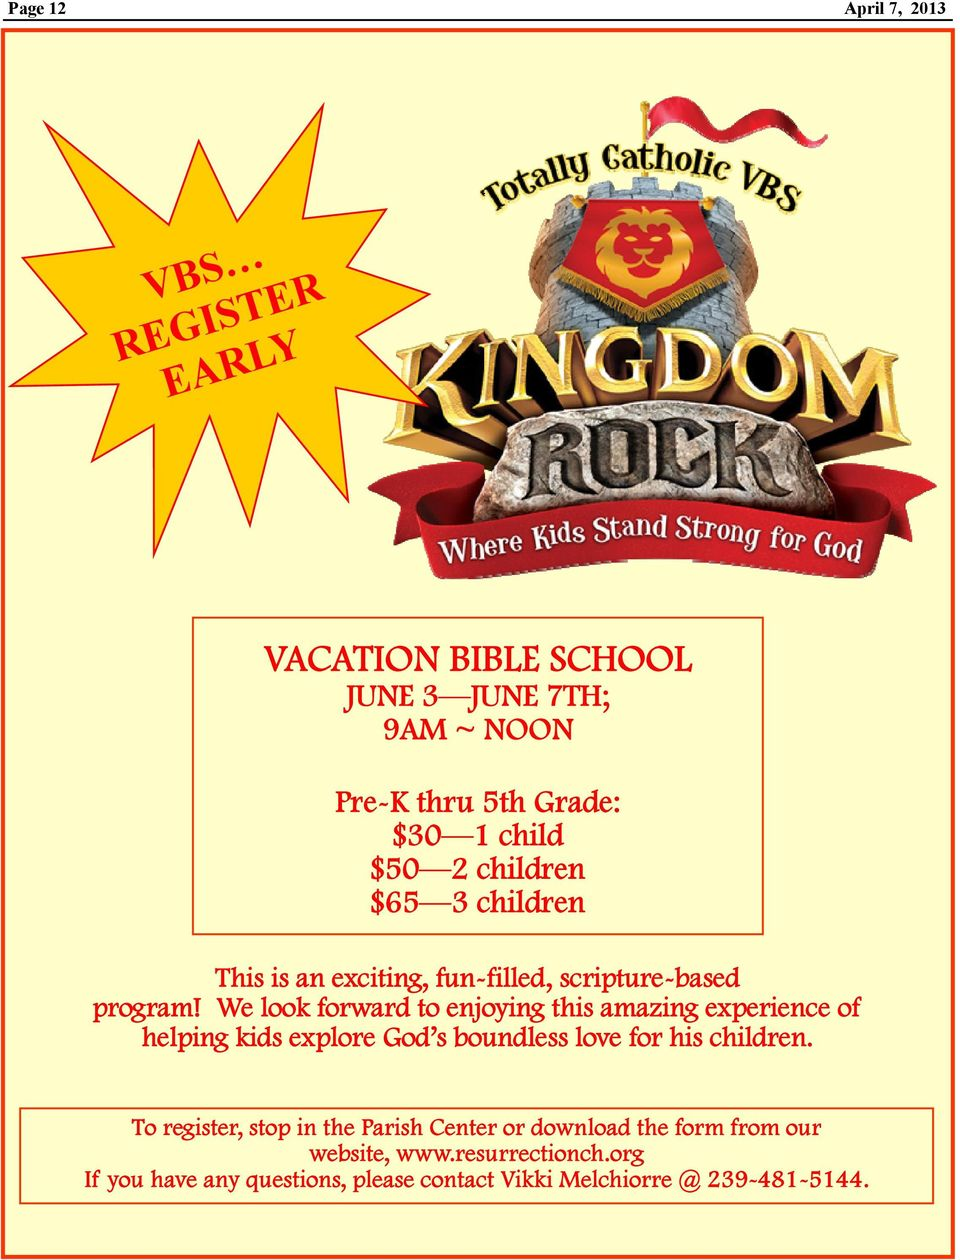 We look forward to enjoying this amazing experience of helping kids explore God s boundless love for his children.